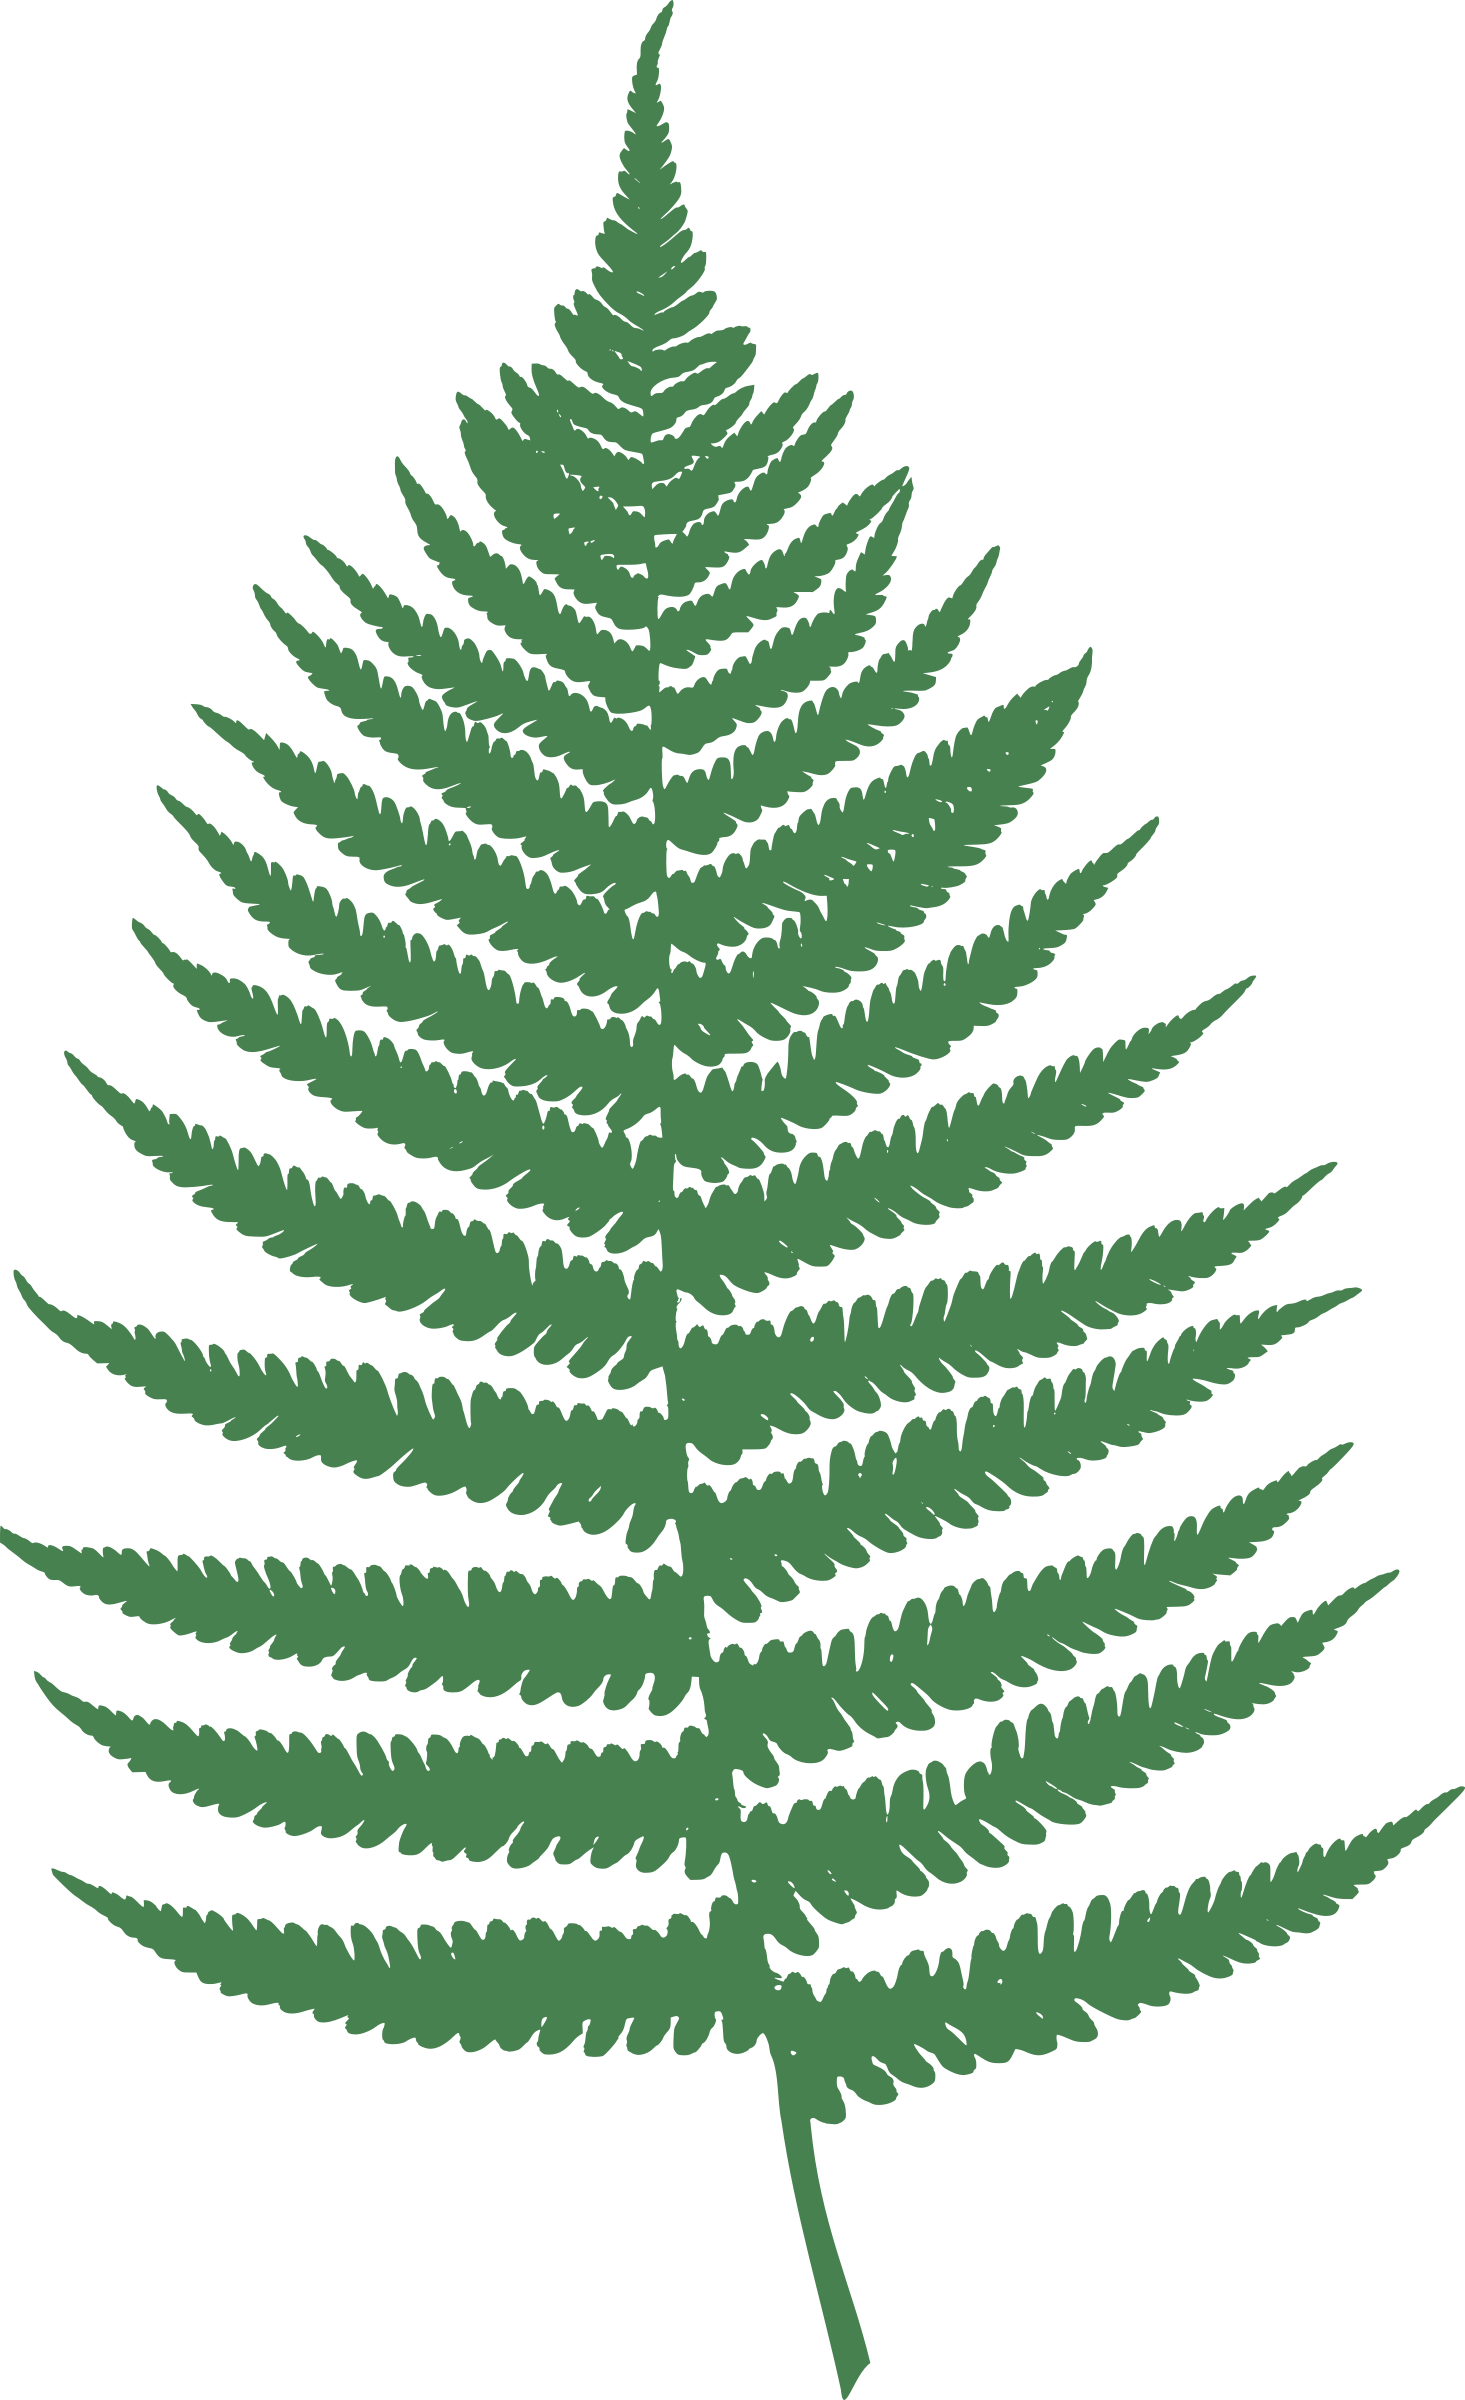 Fern leaf by Moini